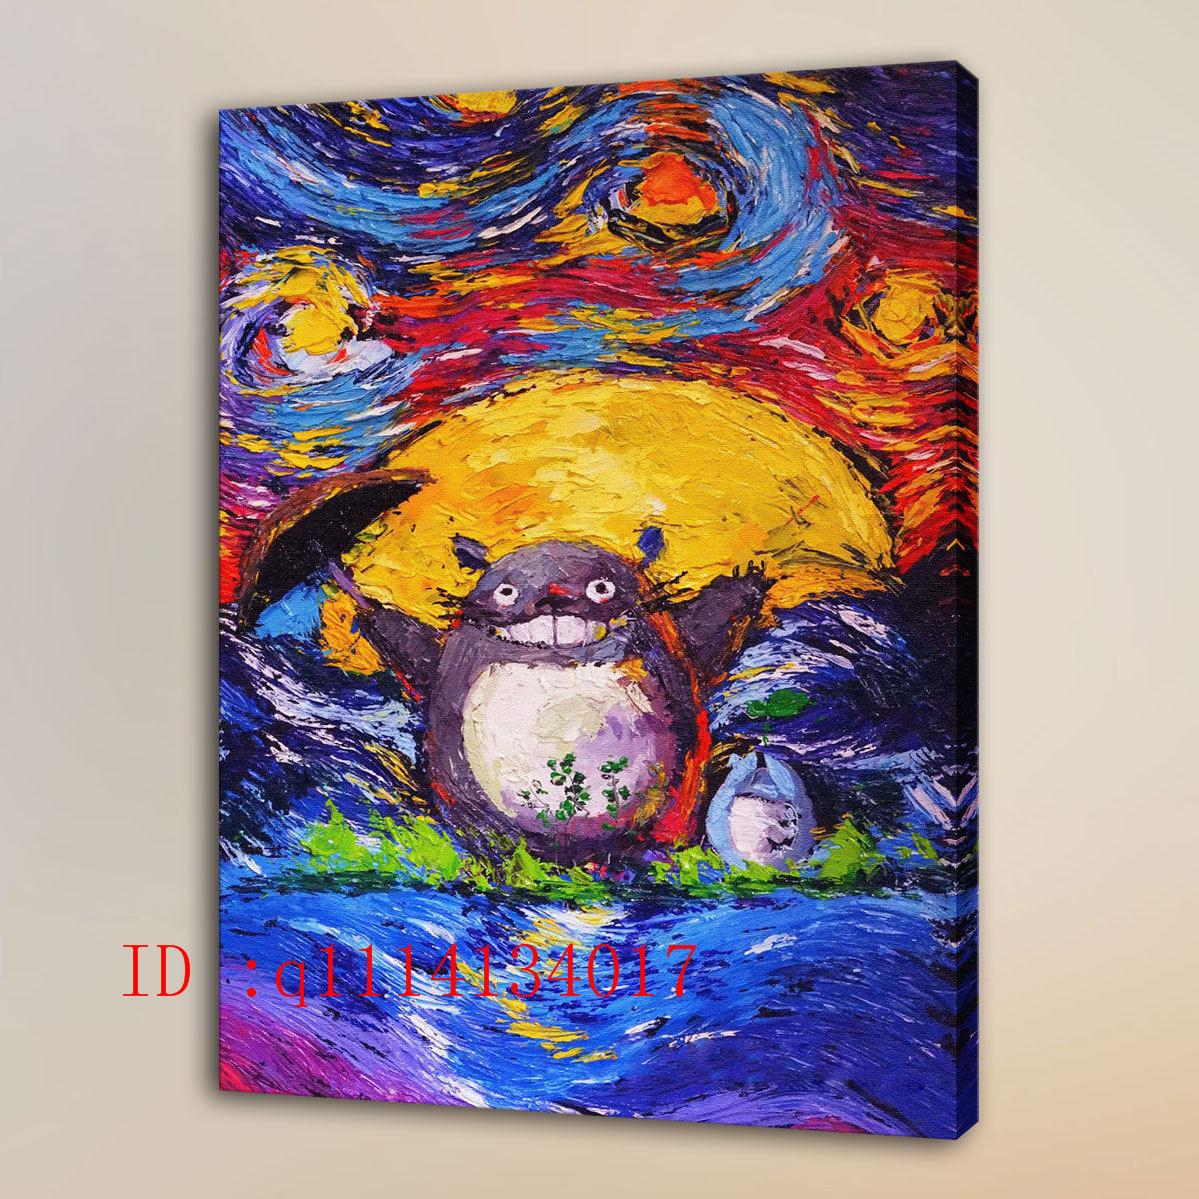 Van gogh my neighbor totoro 2 hd canvas prints wall art oil painting home decor unframed framed van gogh my neighbor totoro home decor for living room oil